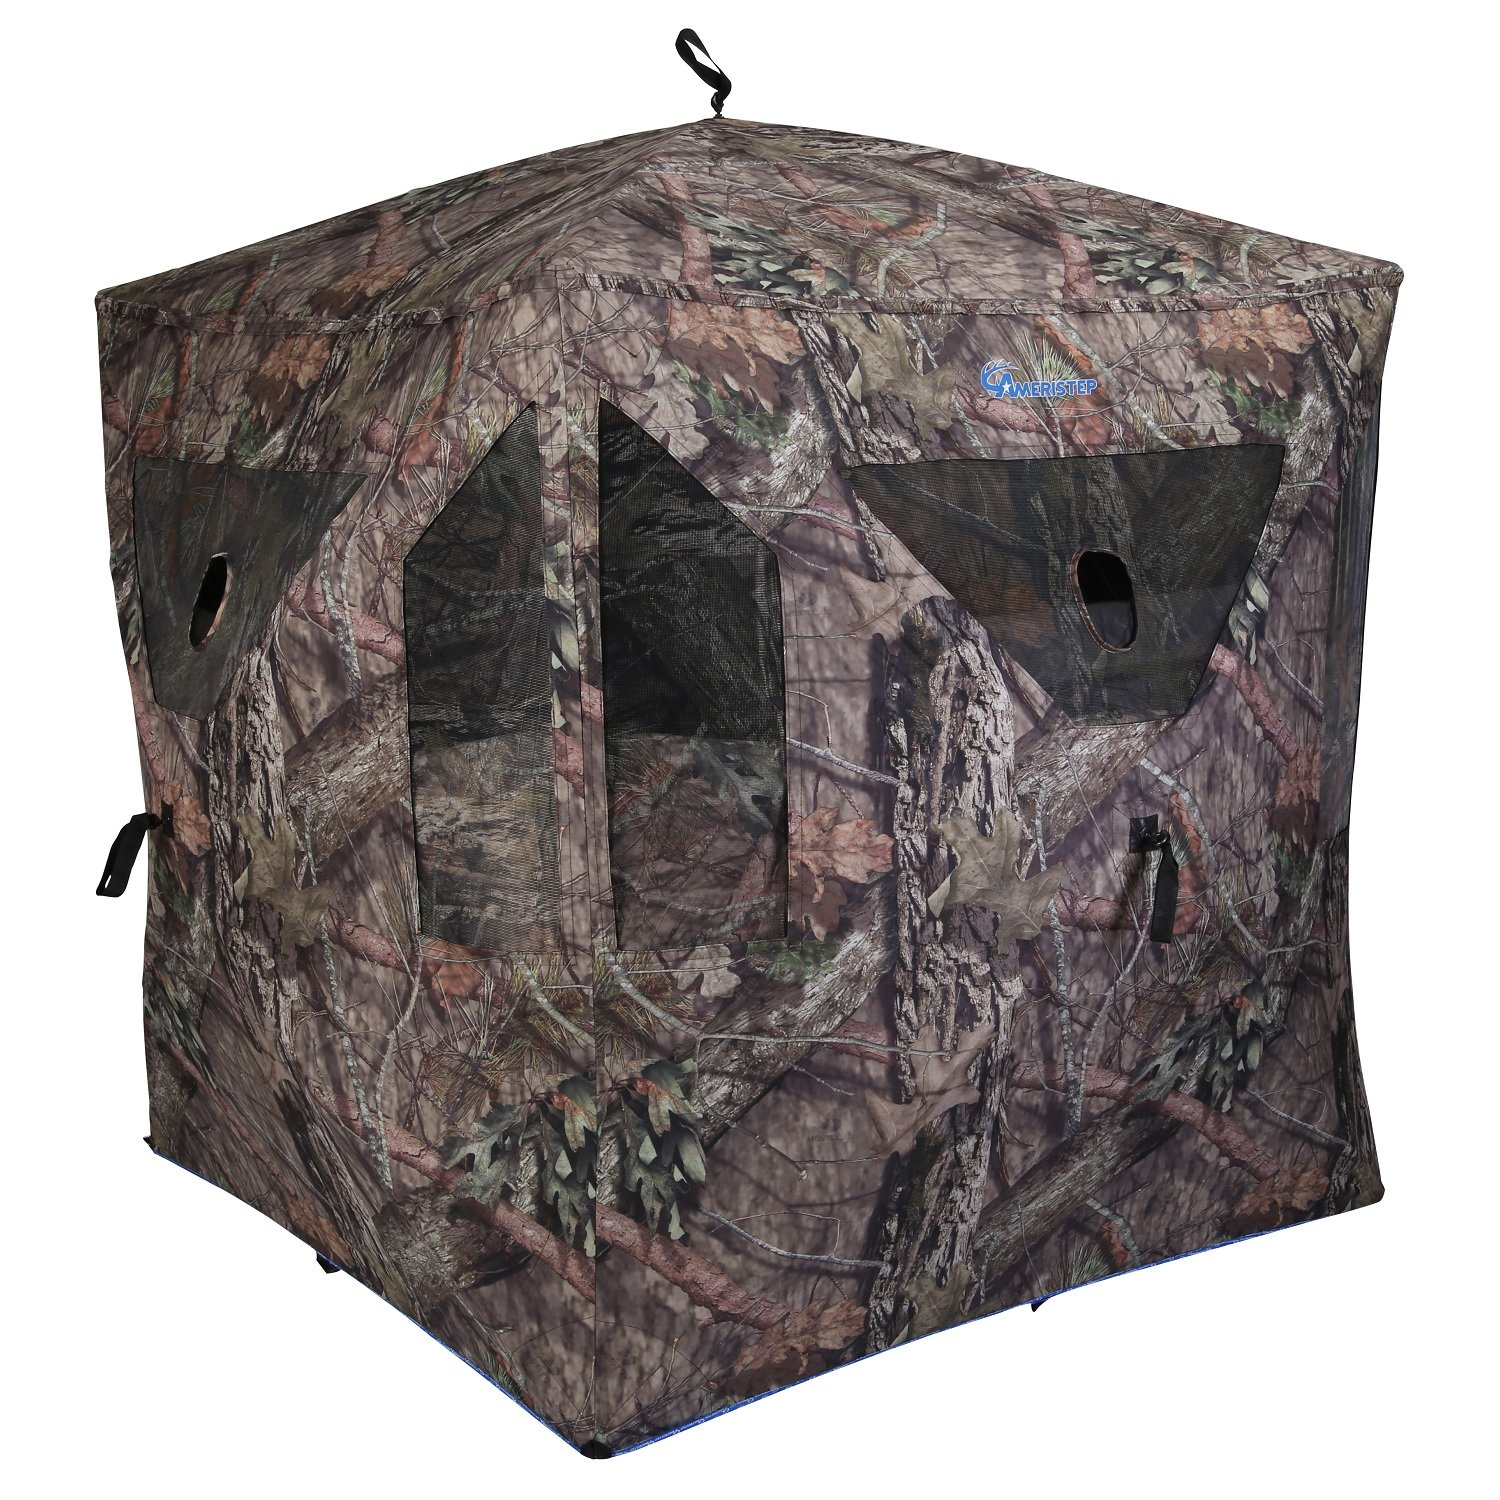 blind blinds flexible product ground at zippers hunting ts poles browning strong illusion and index oversized fiberglass